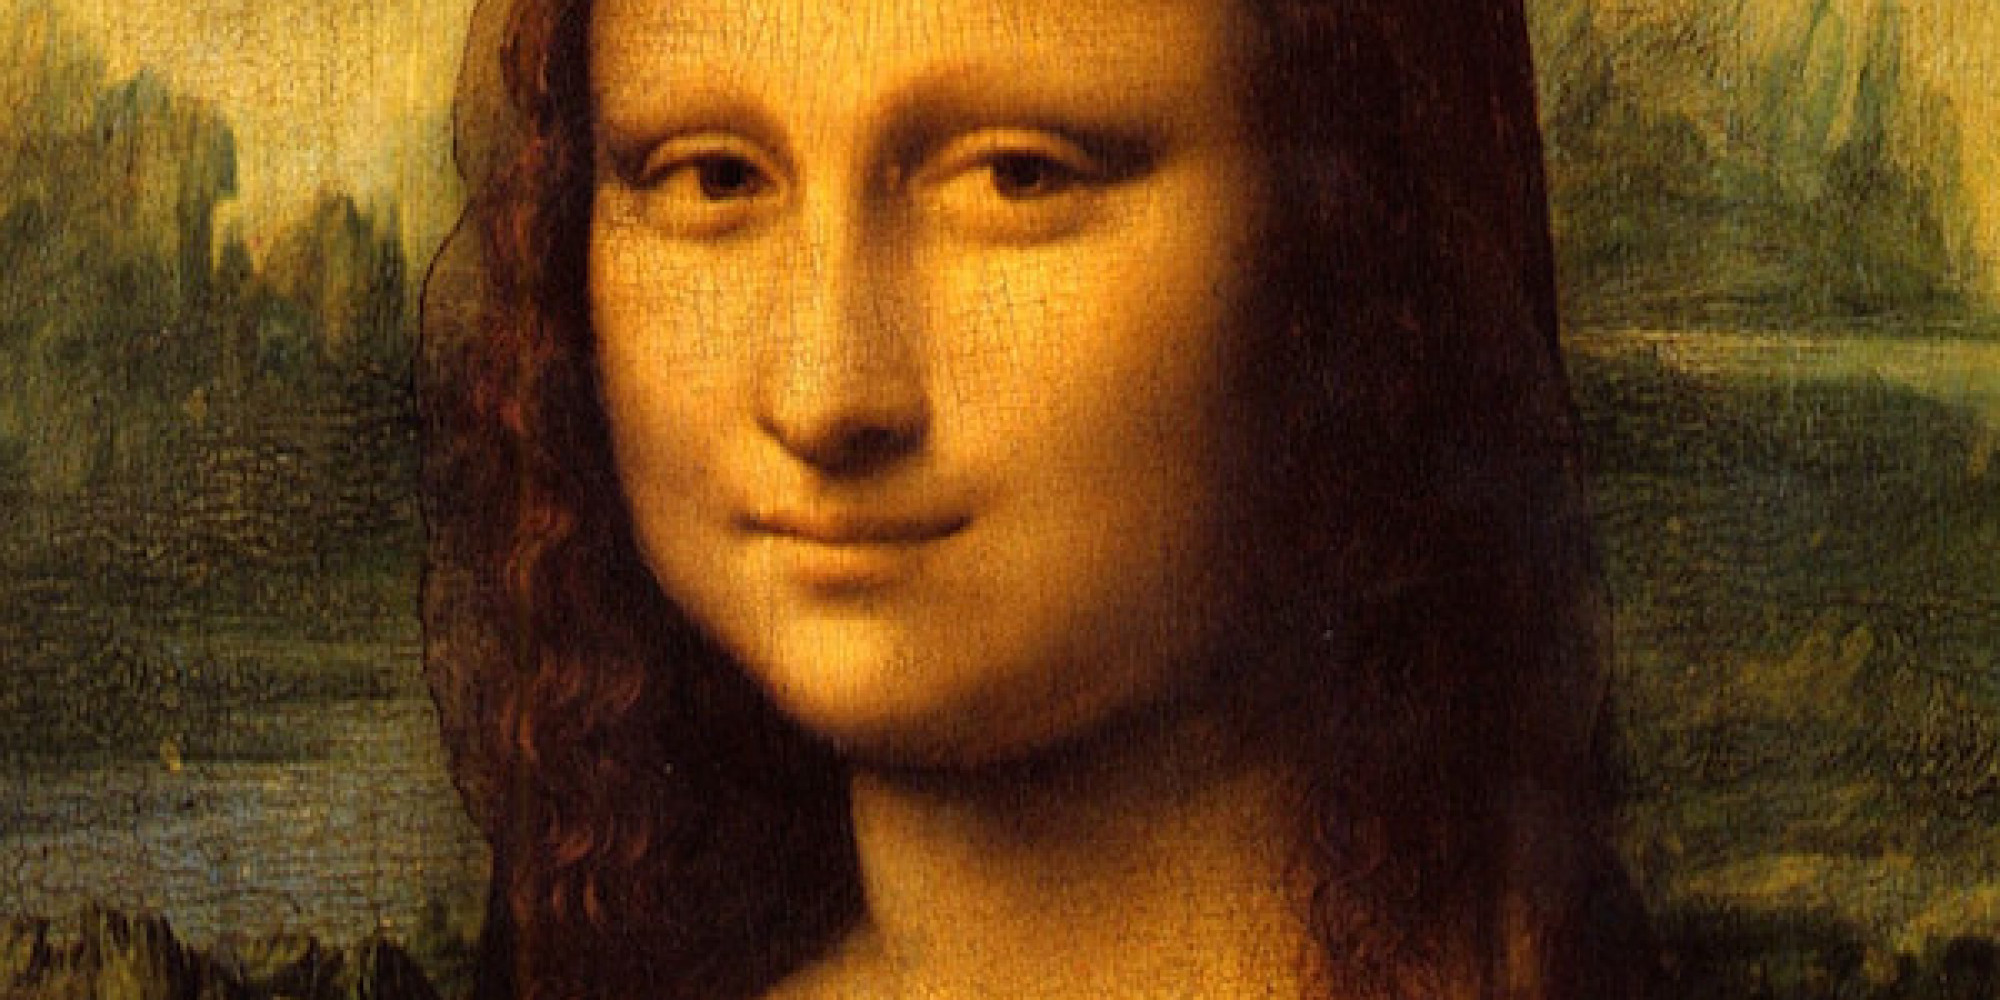 Mona lisa smile analysis essay